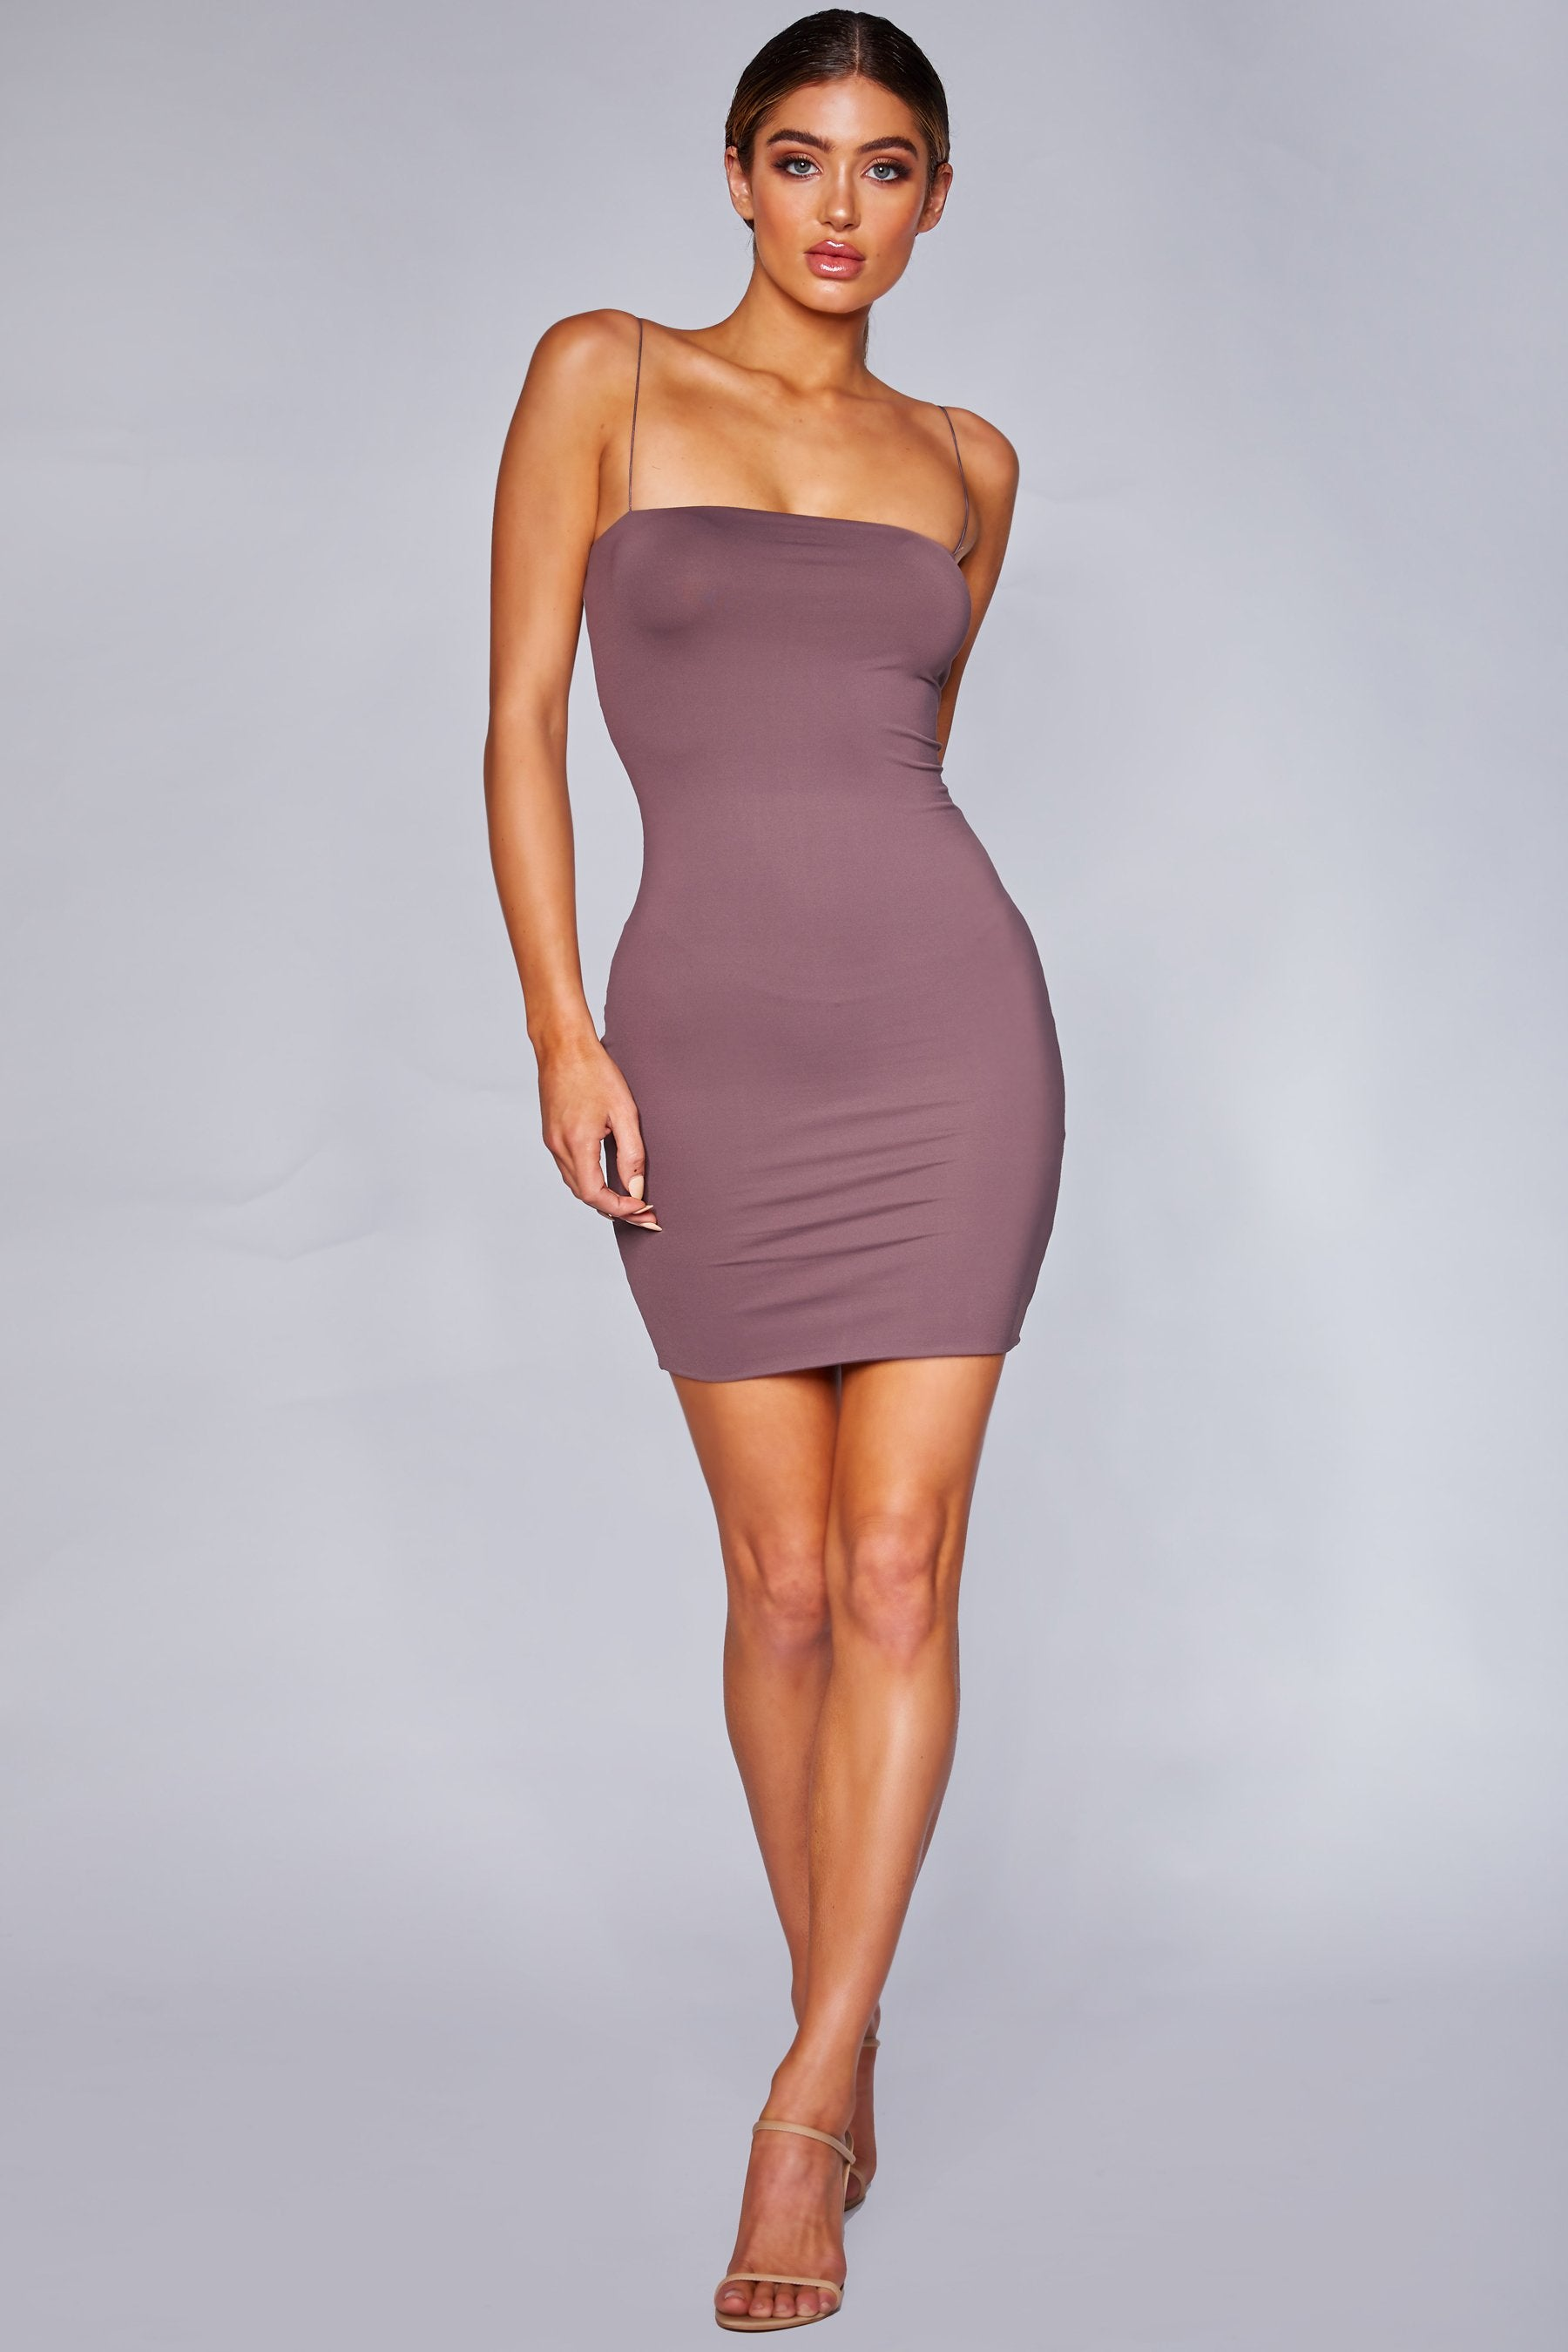 Opinion style zappos bodycon dress with ruffle bottom up jeans company free gym wear